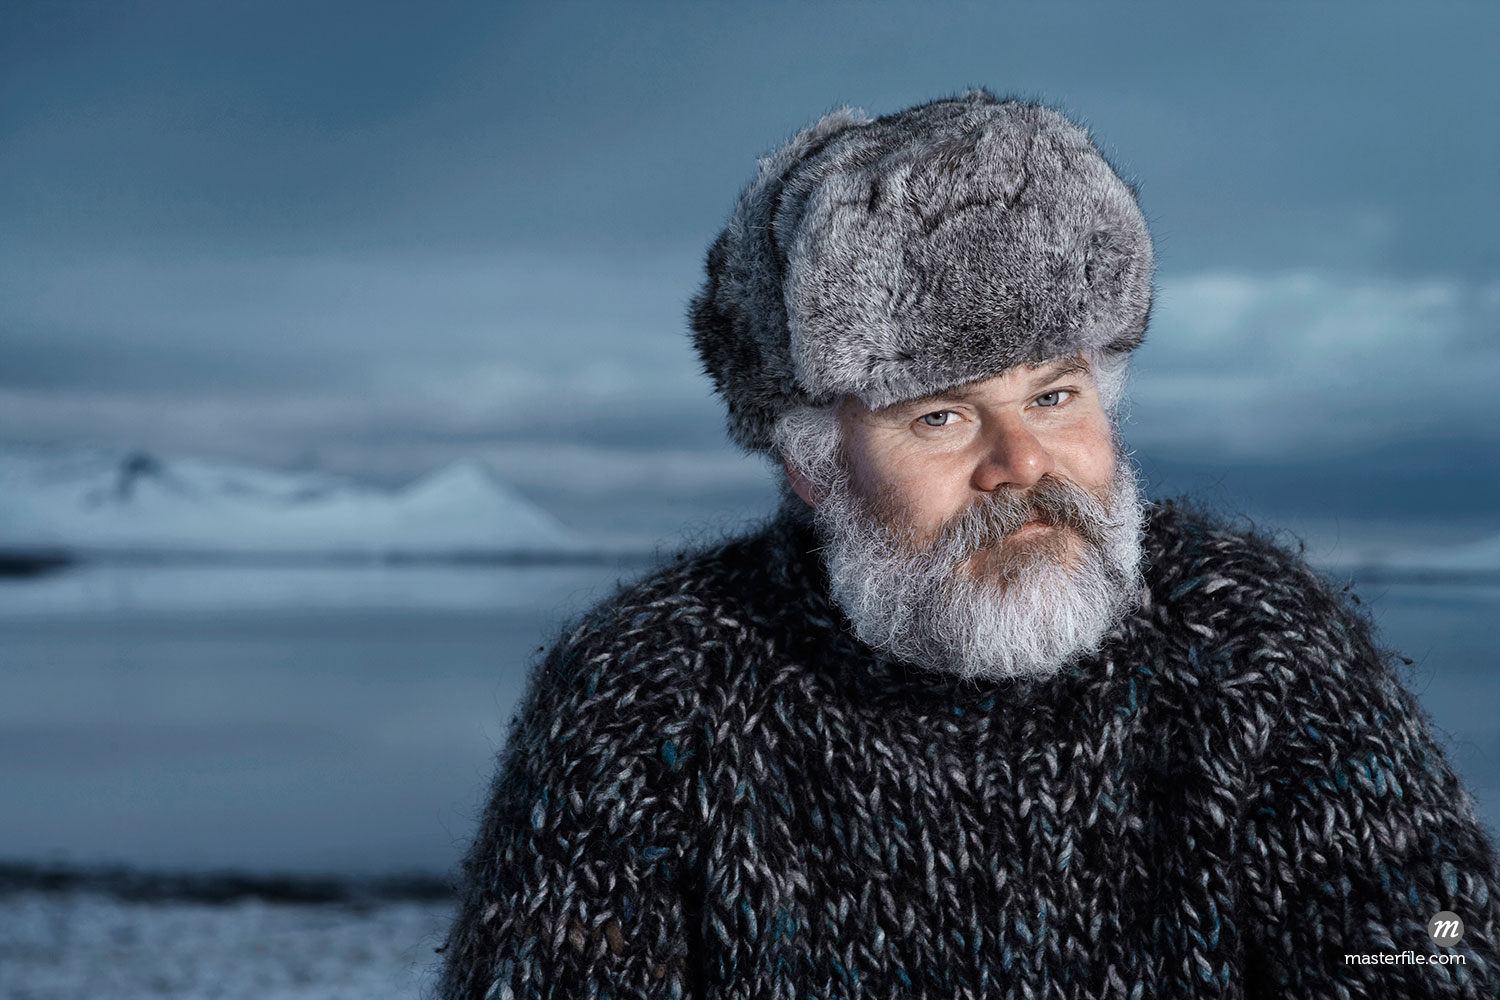 Man with gray beard wearing gray fur hat outdoors at winter in Iceland  ©  Atli Mar Hafsteinsson / Masterfile